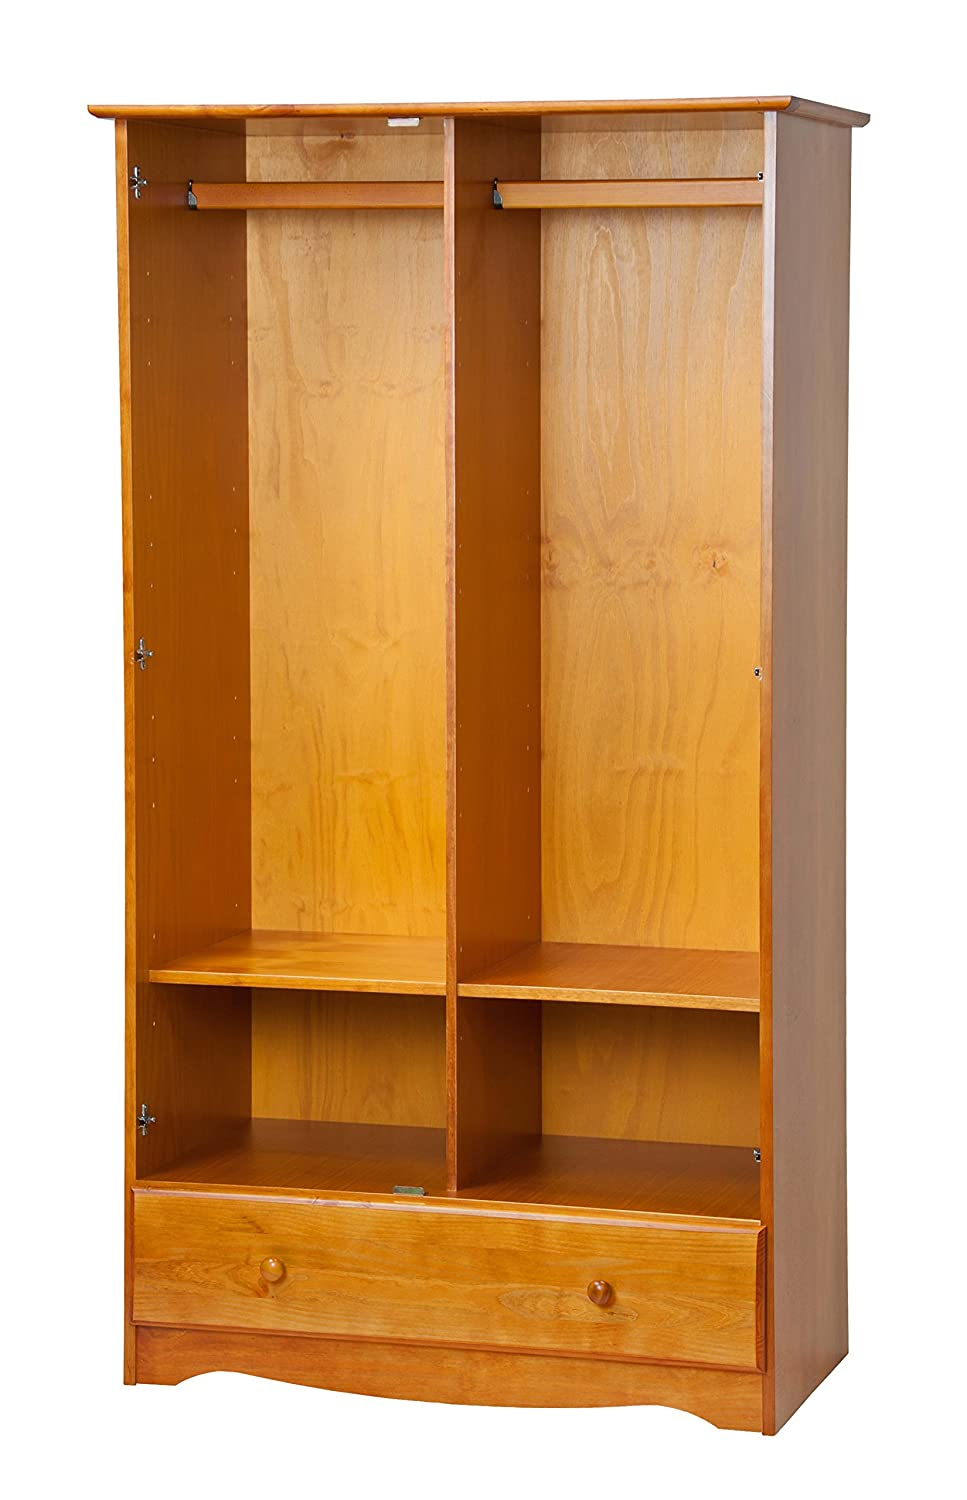 Your home improvements refference solid wood wardrobe closet - Amazon Com 100 Solid Wood Universal Wardrobe Armoire Closet By Palace Imports Honey Pine Color 40 W X 72 H X 21 D 2 Clothing Rods 2 Shelves 1 Lock